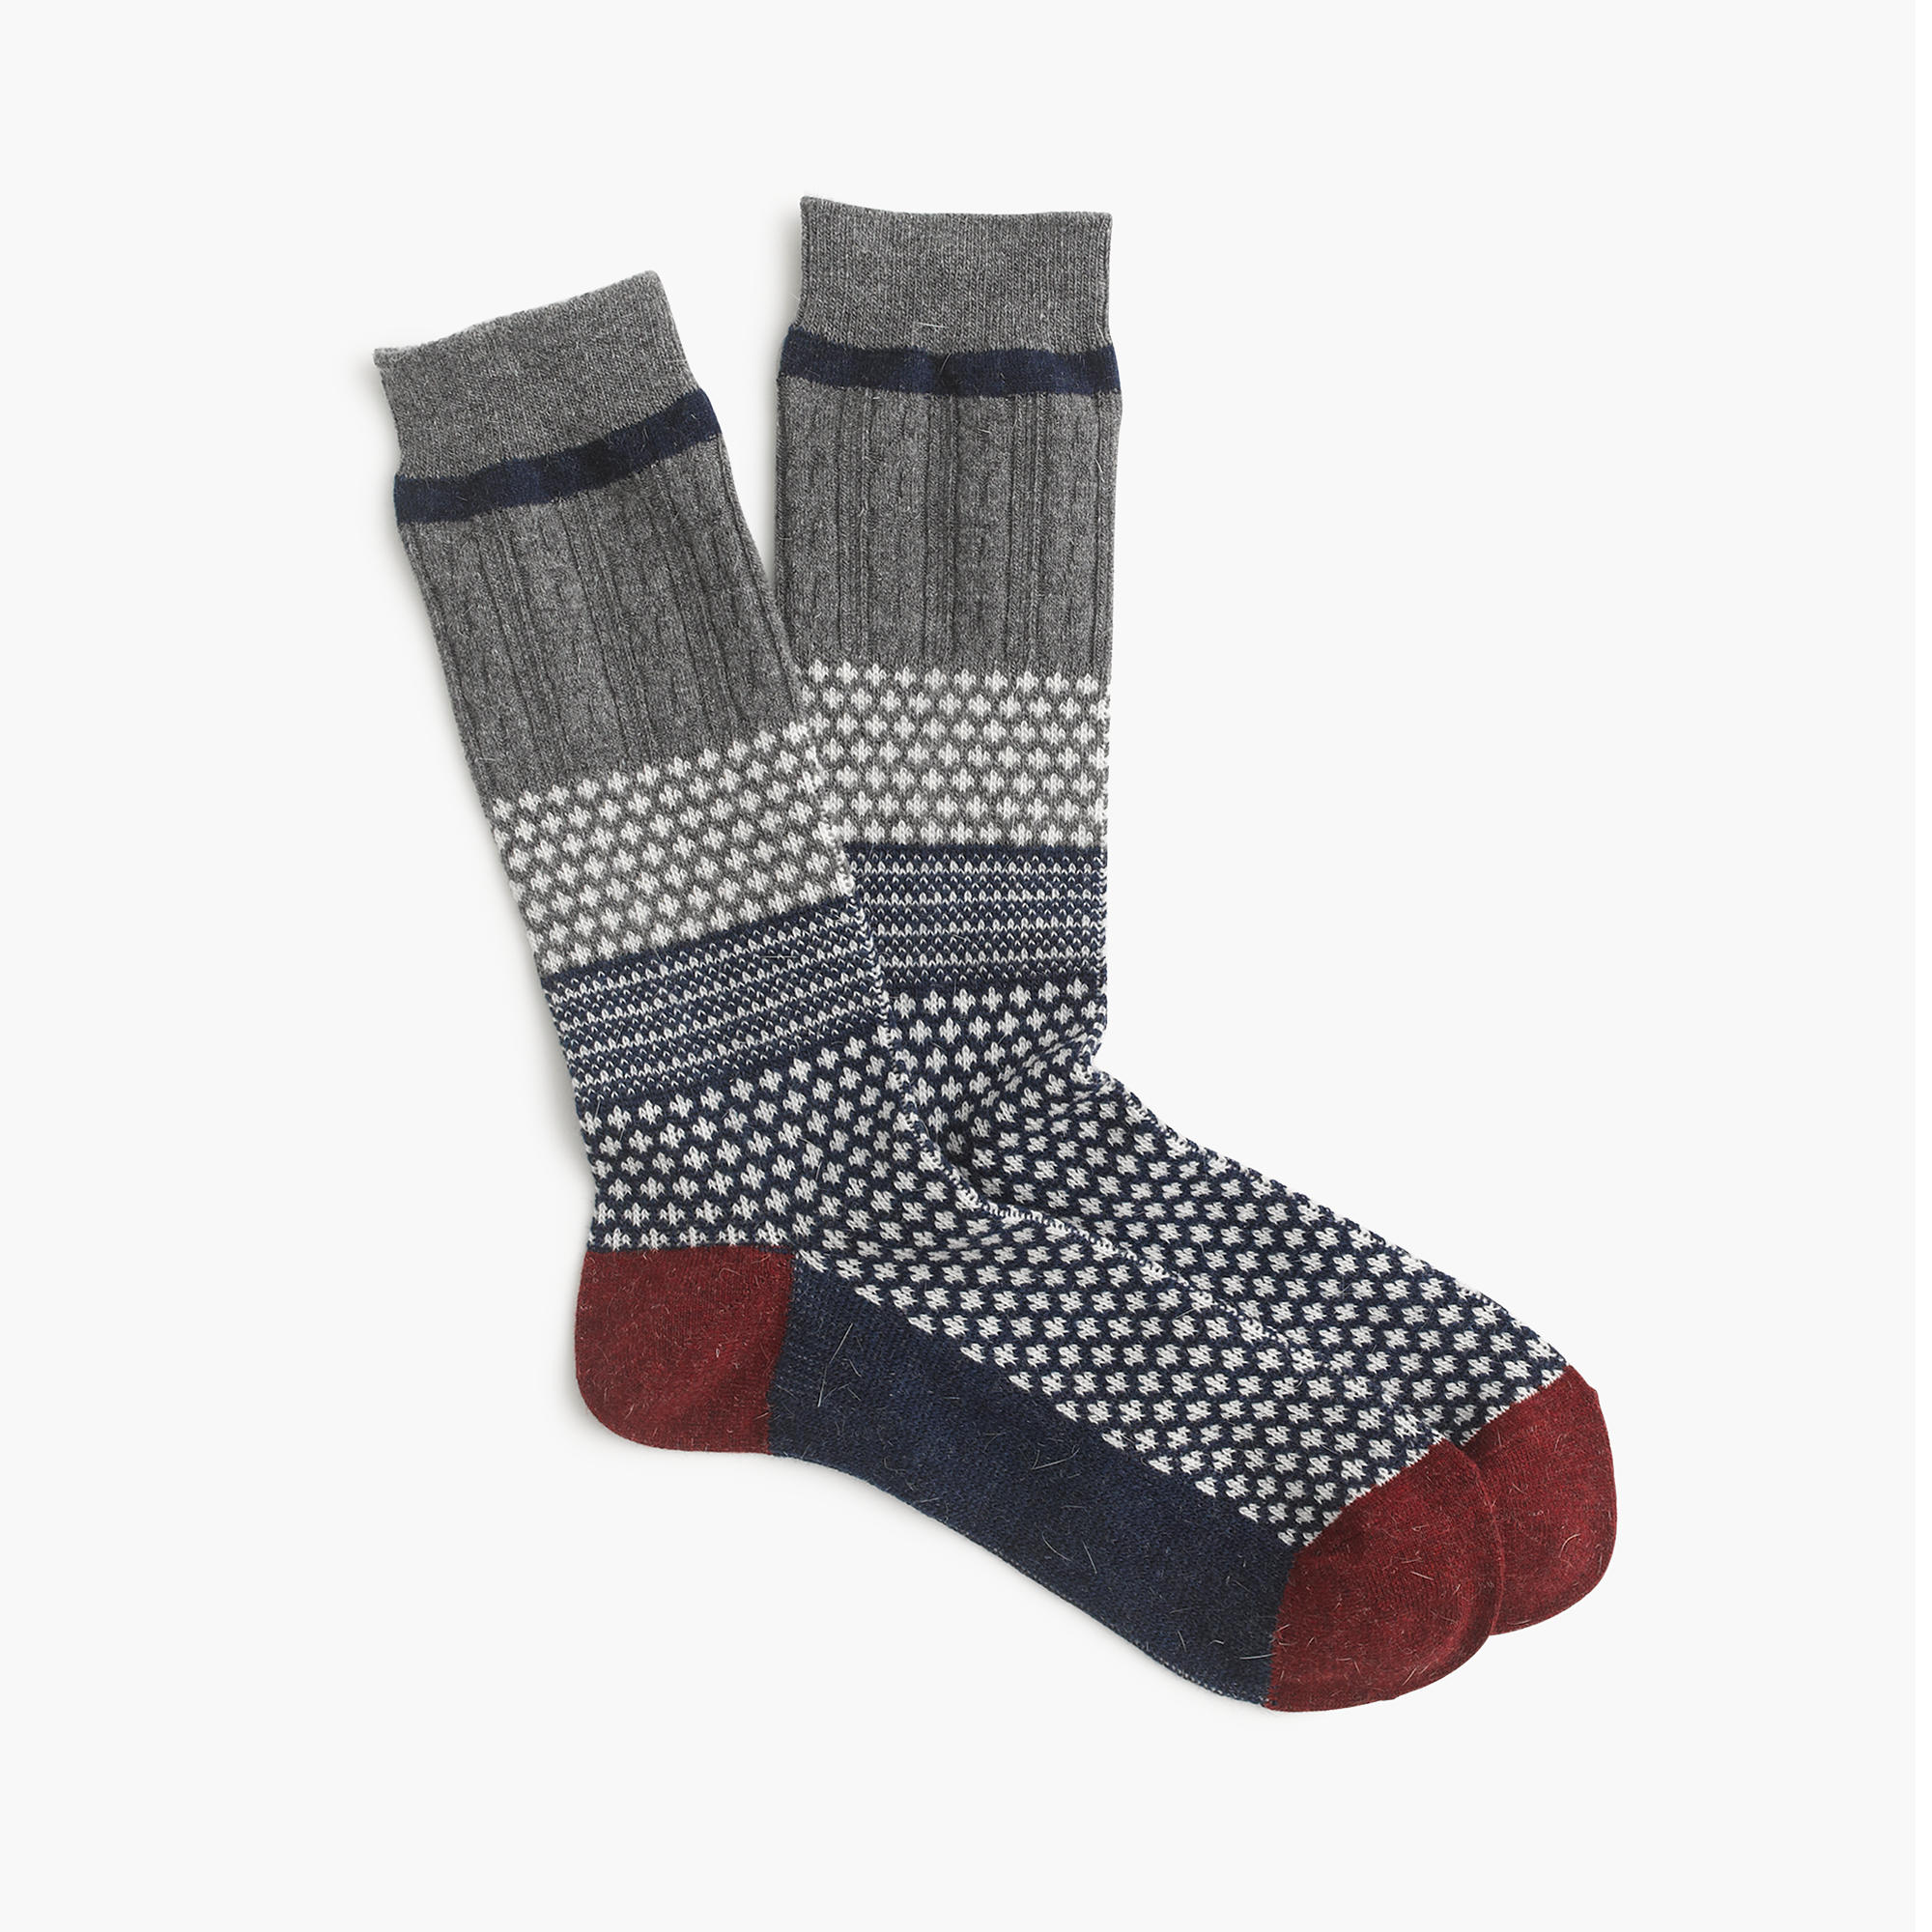 J.Crew ANONYMOUS ISM™ JACQUARD SOCKS , $28